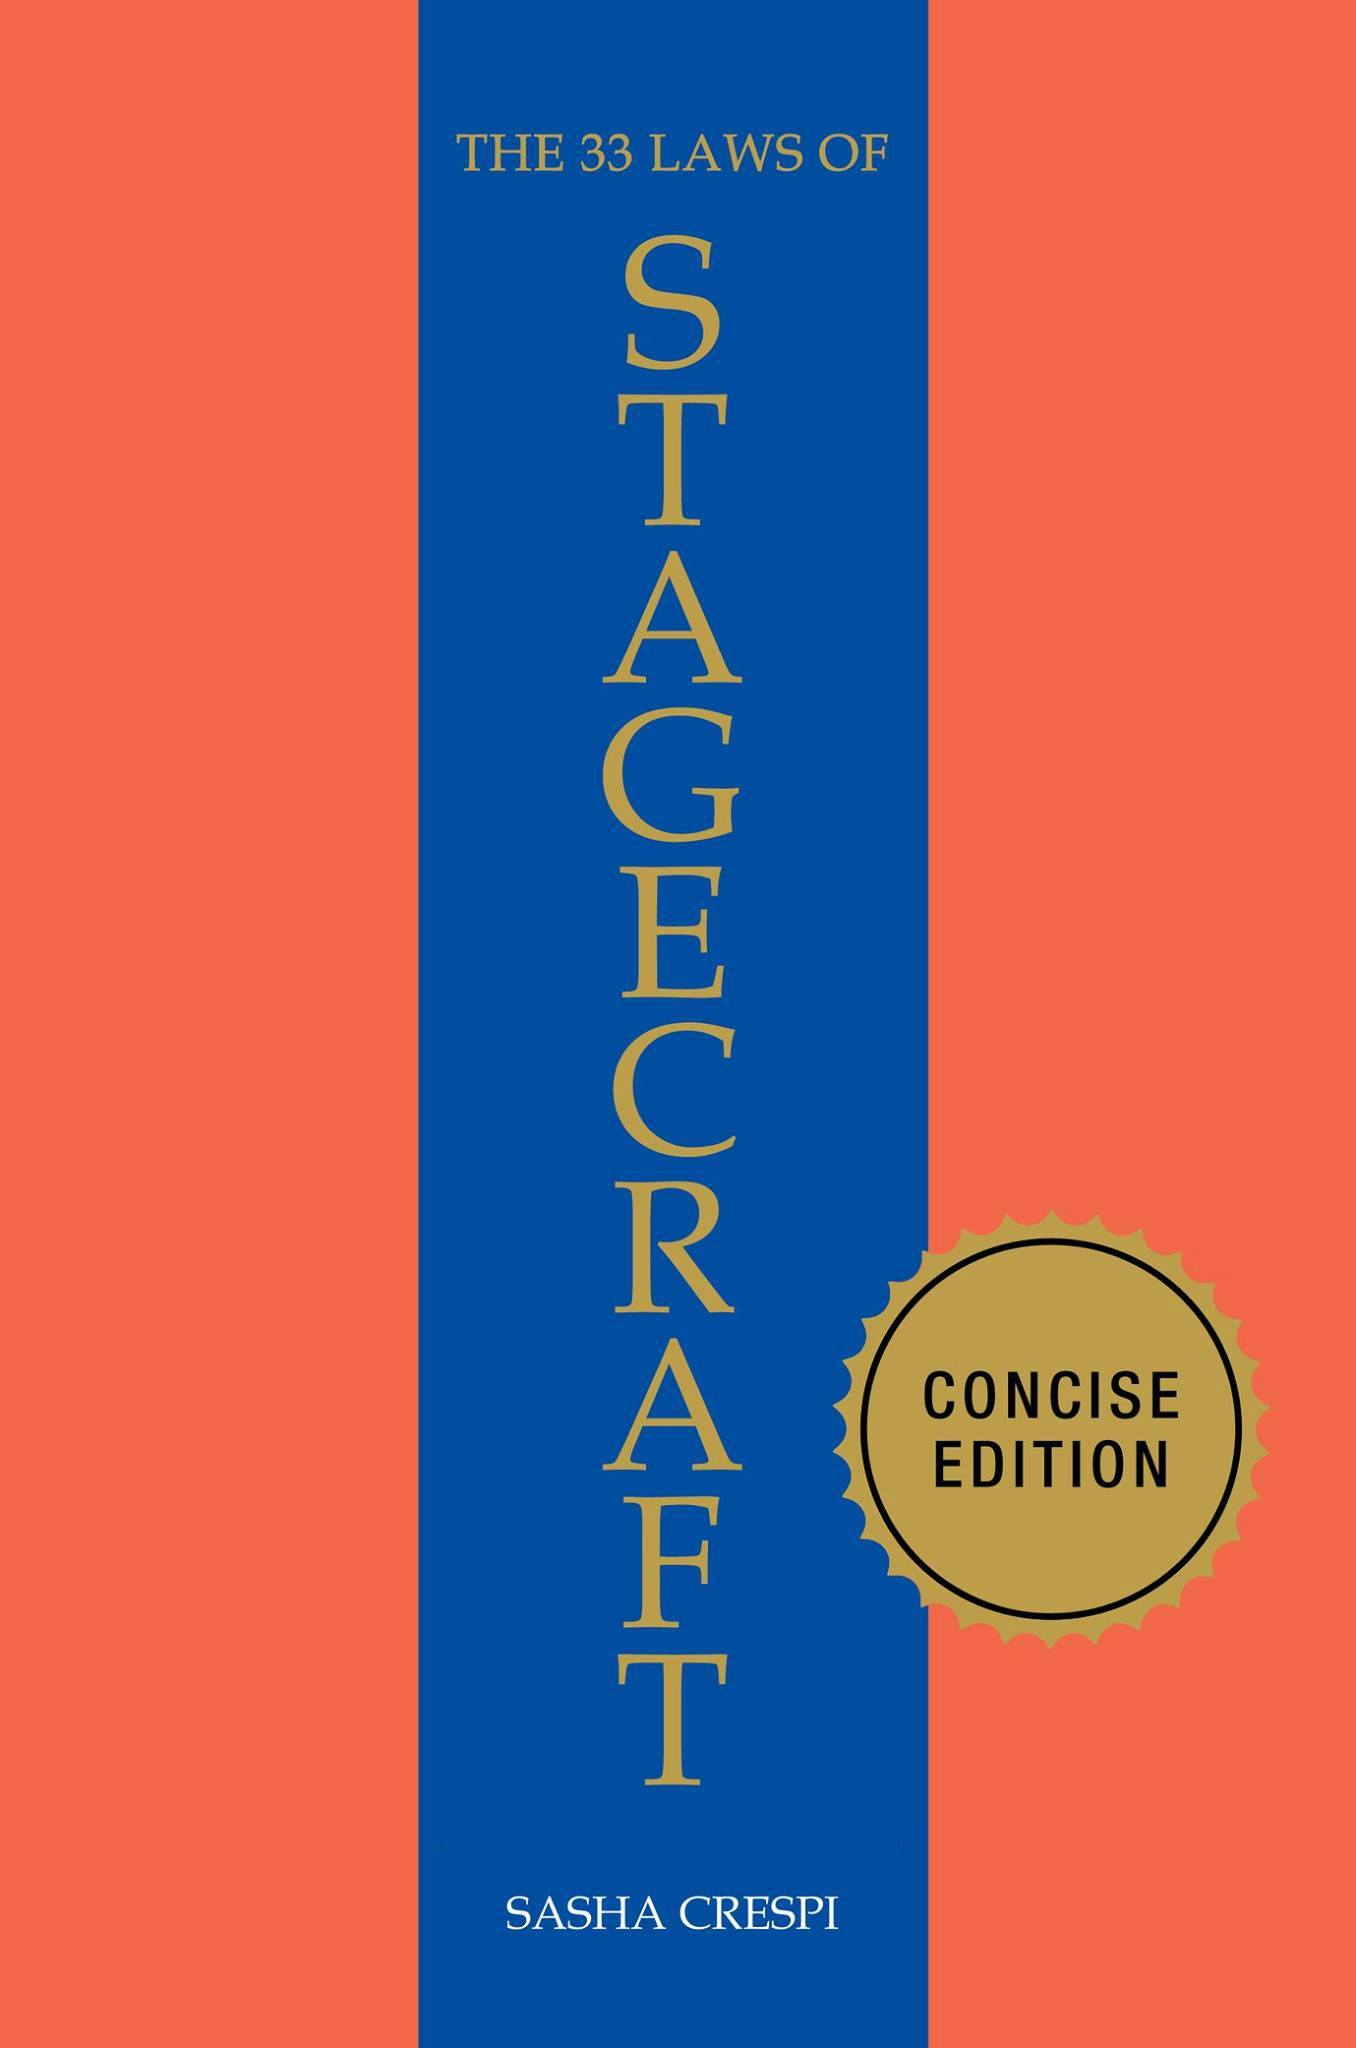 The 33 laws of stagecraft